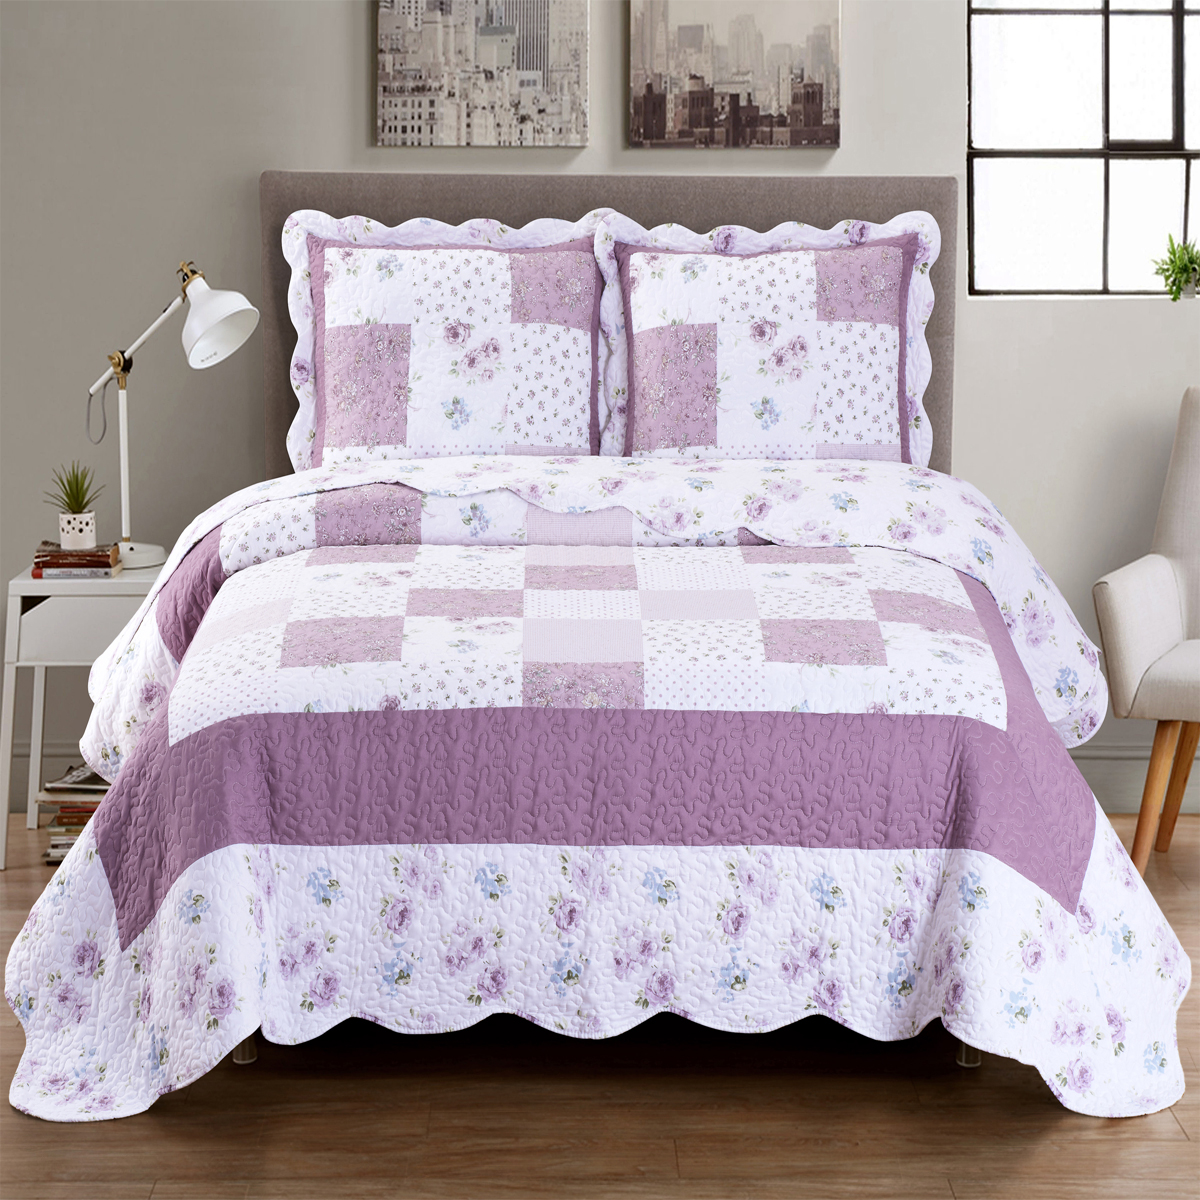 Ventura Oversize Coverlet Lightweight Fill Wrinkle-Free Microfiber Quilt Set by Royal Plaza Textiles, Inc.